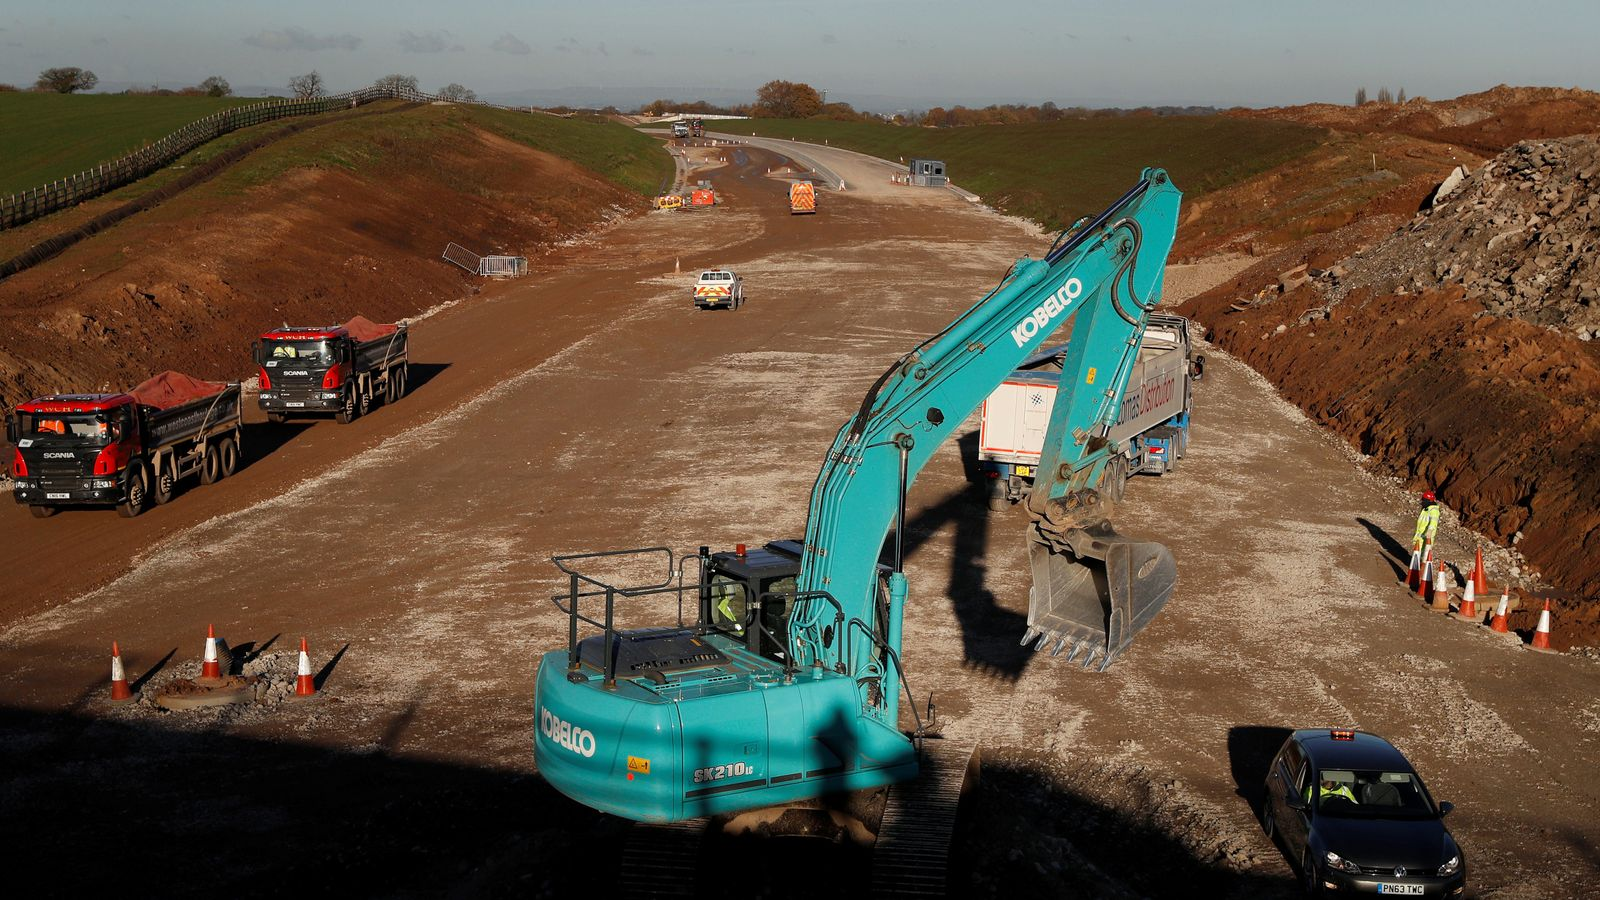 Climate change: Carbon emissions from England's £27.4bn roads scheme '100 times greater than government claims', experts tell court